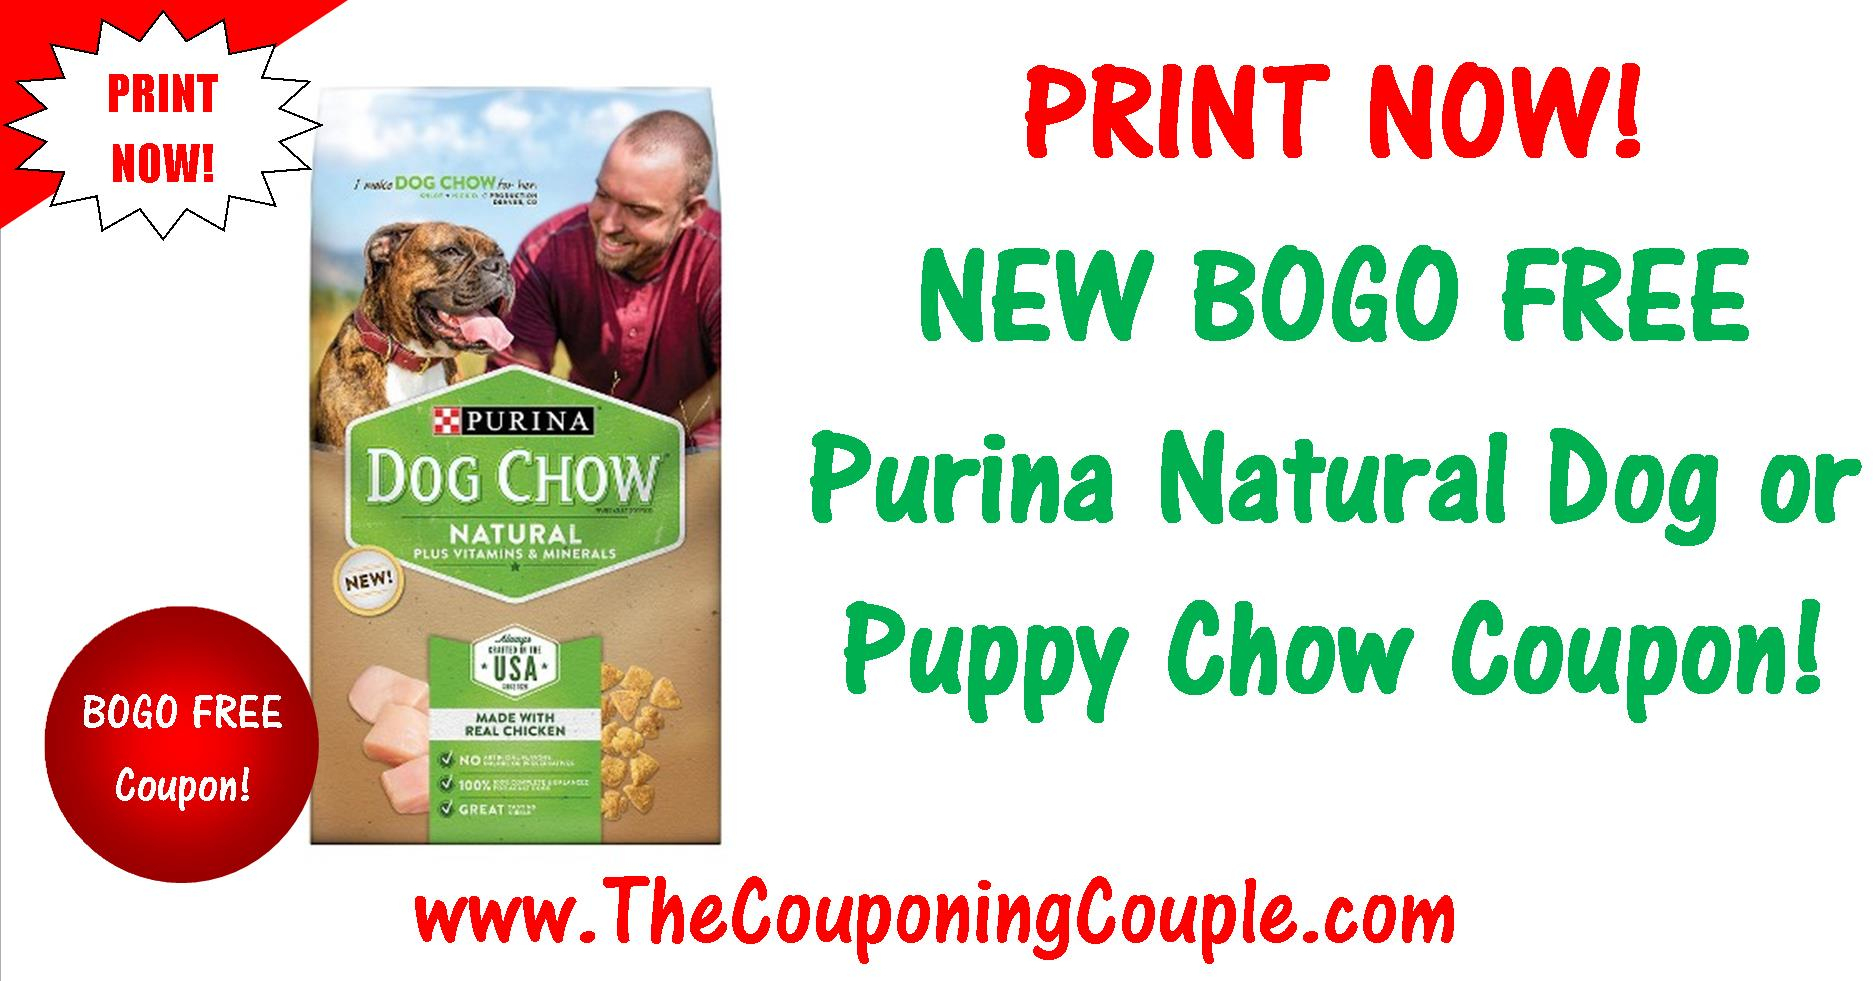 New Bogo Free Purina Natural Printable Coupon ~ Print Now! - Free Printable Nature Made Vitamin Coupons